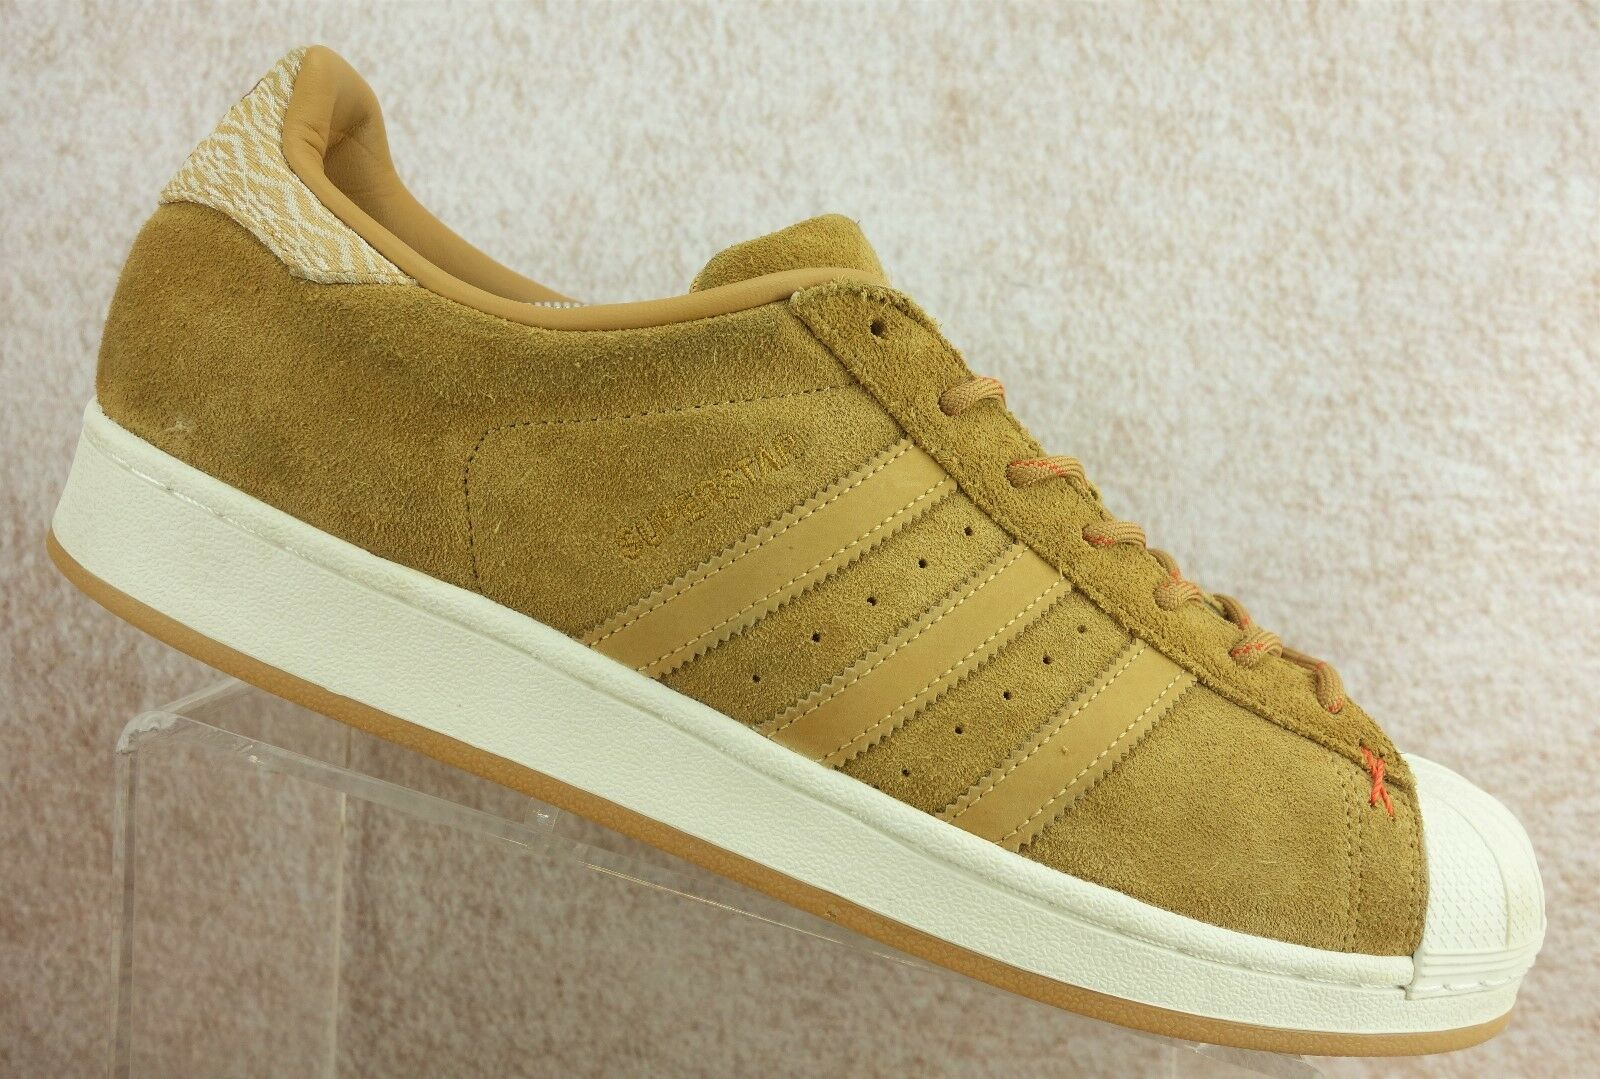 Adidas Superstar Mesa Brown Suede Sneaker Fashion Sport Men's 13 Comfortable and good-looking